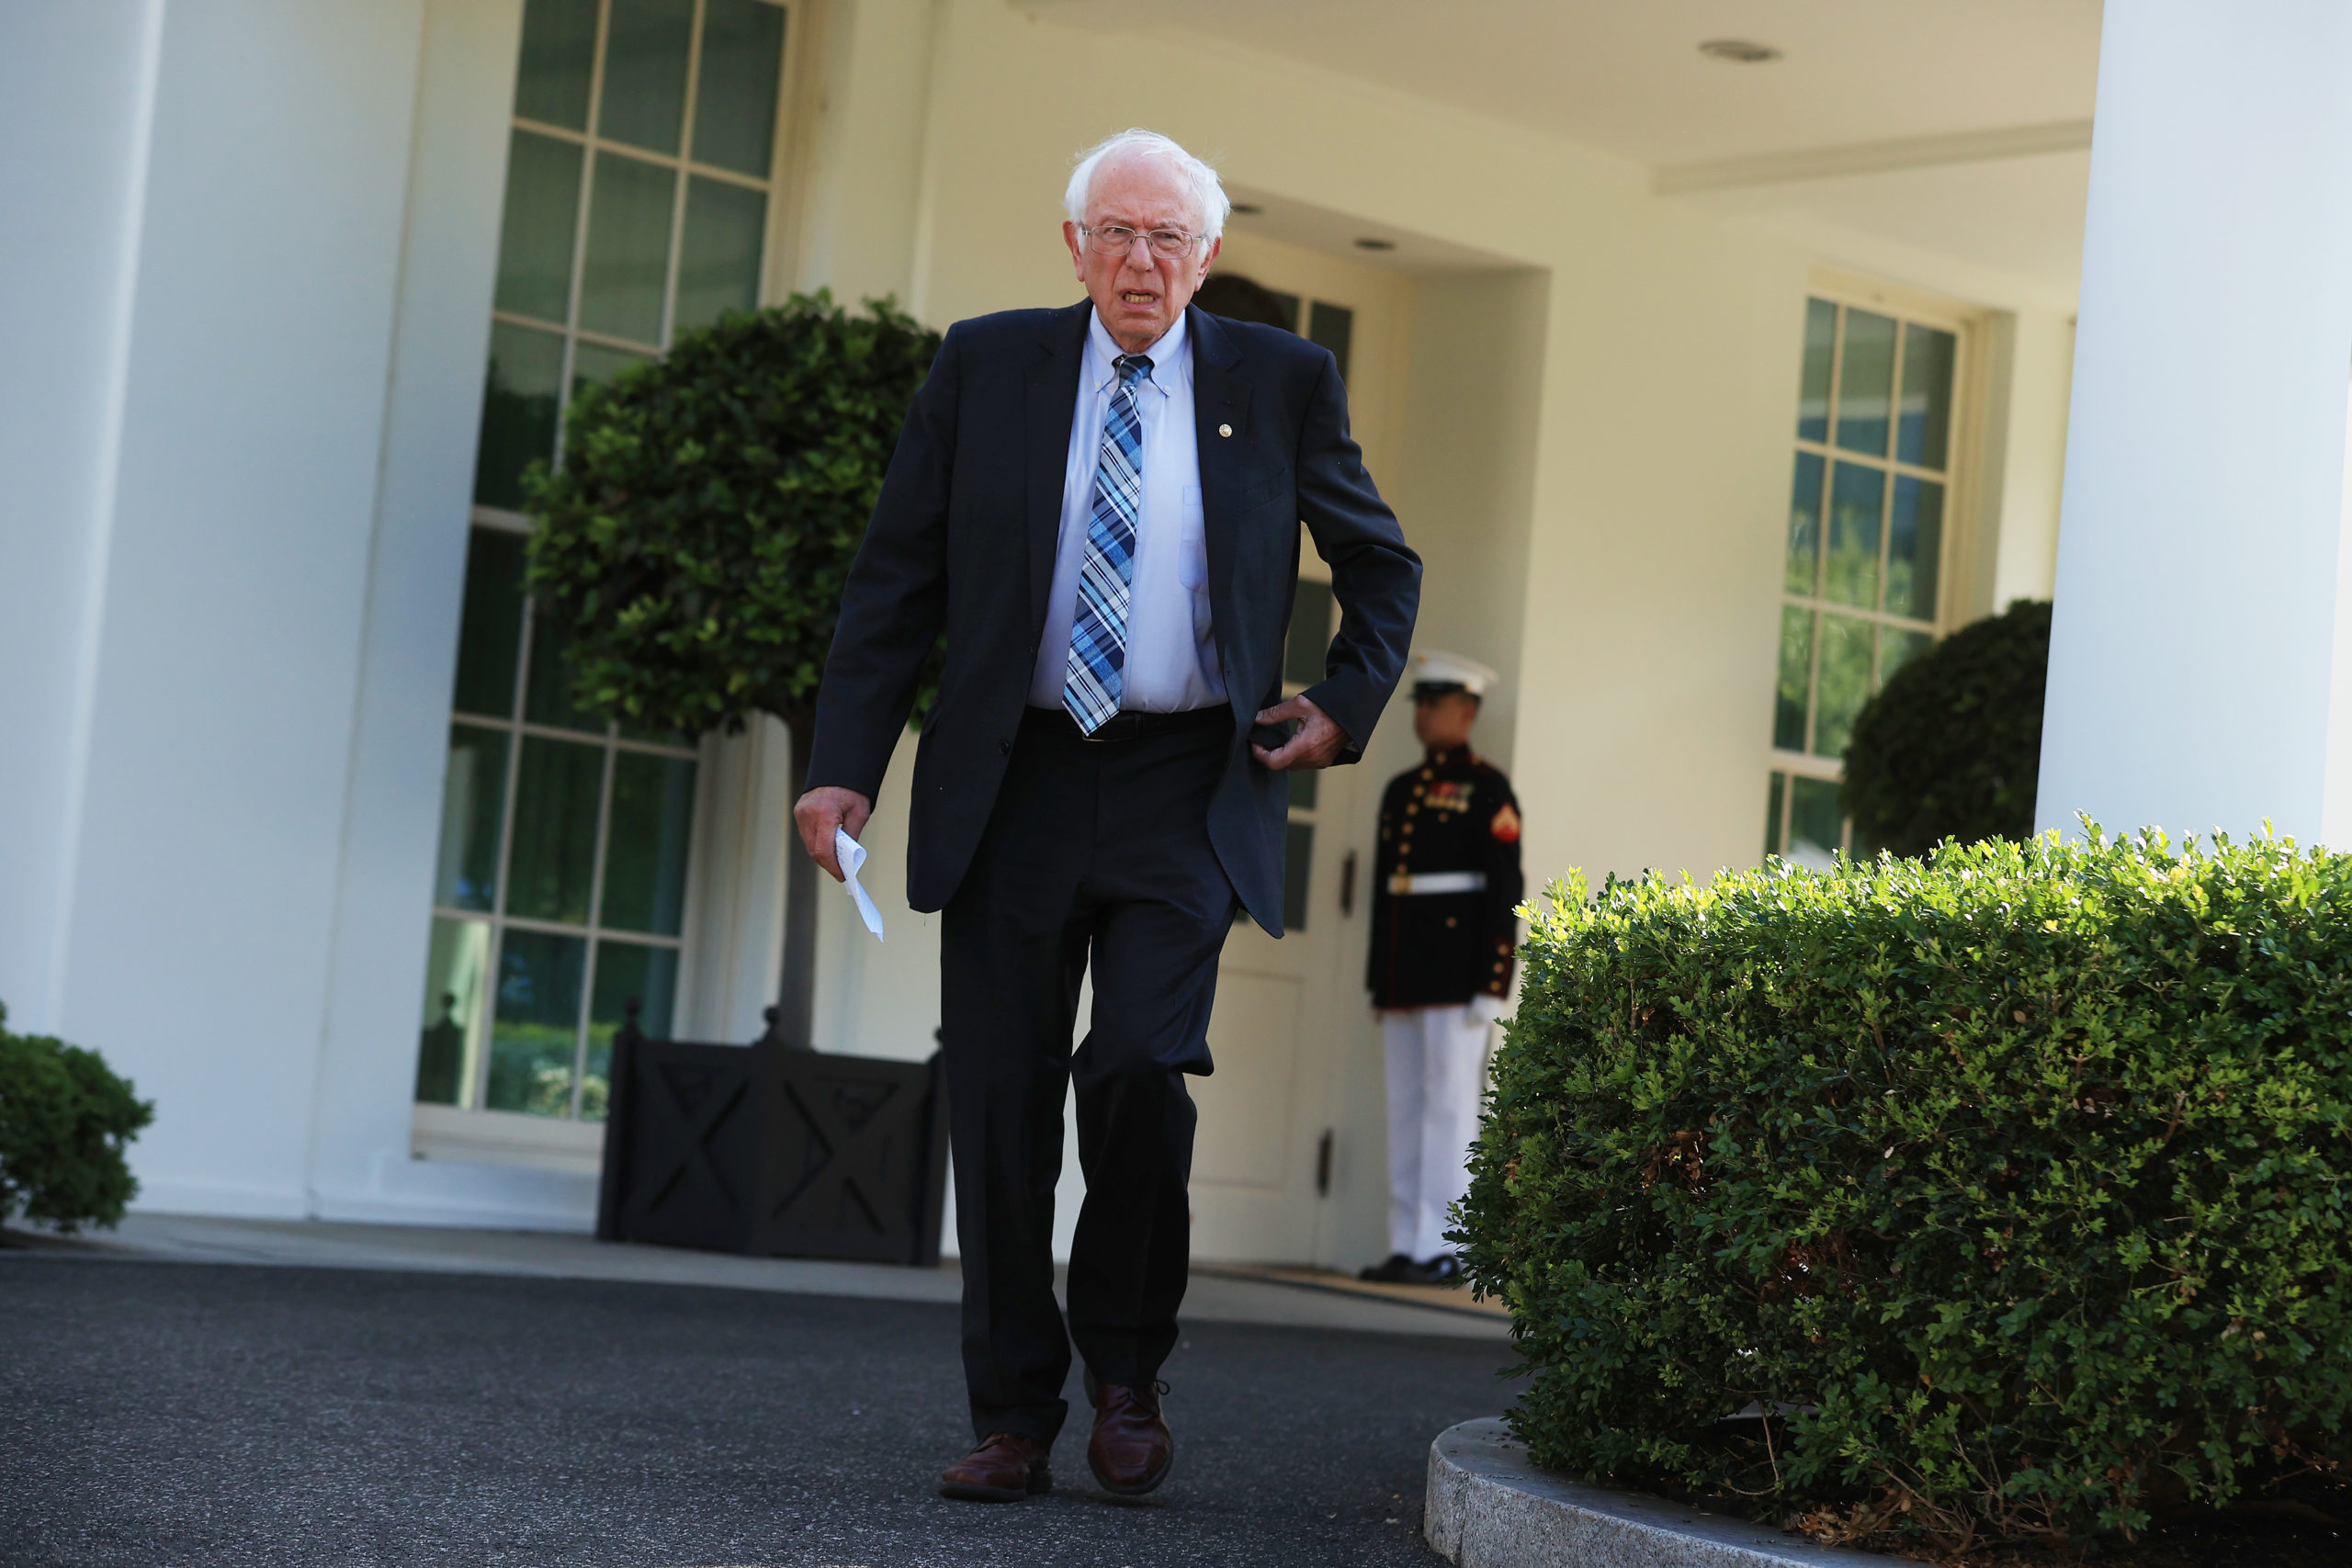 Sen. Bernie Sanders talks to reporters outside the West Wing after meeting with President Joe Biden on July 12. (Chip Somodevilla/Getty Images)